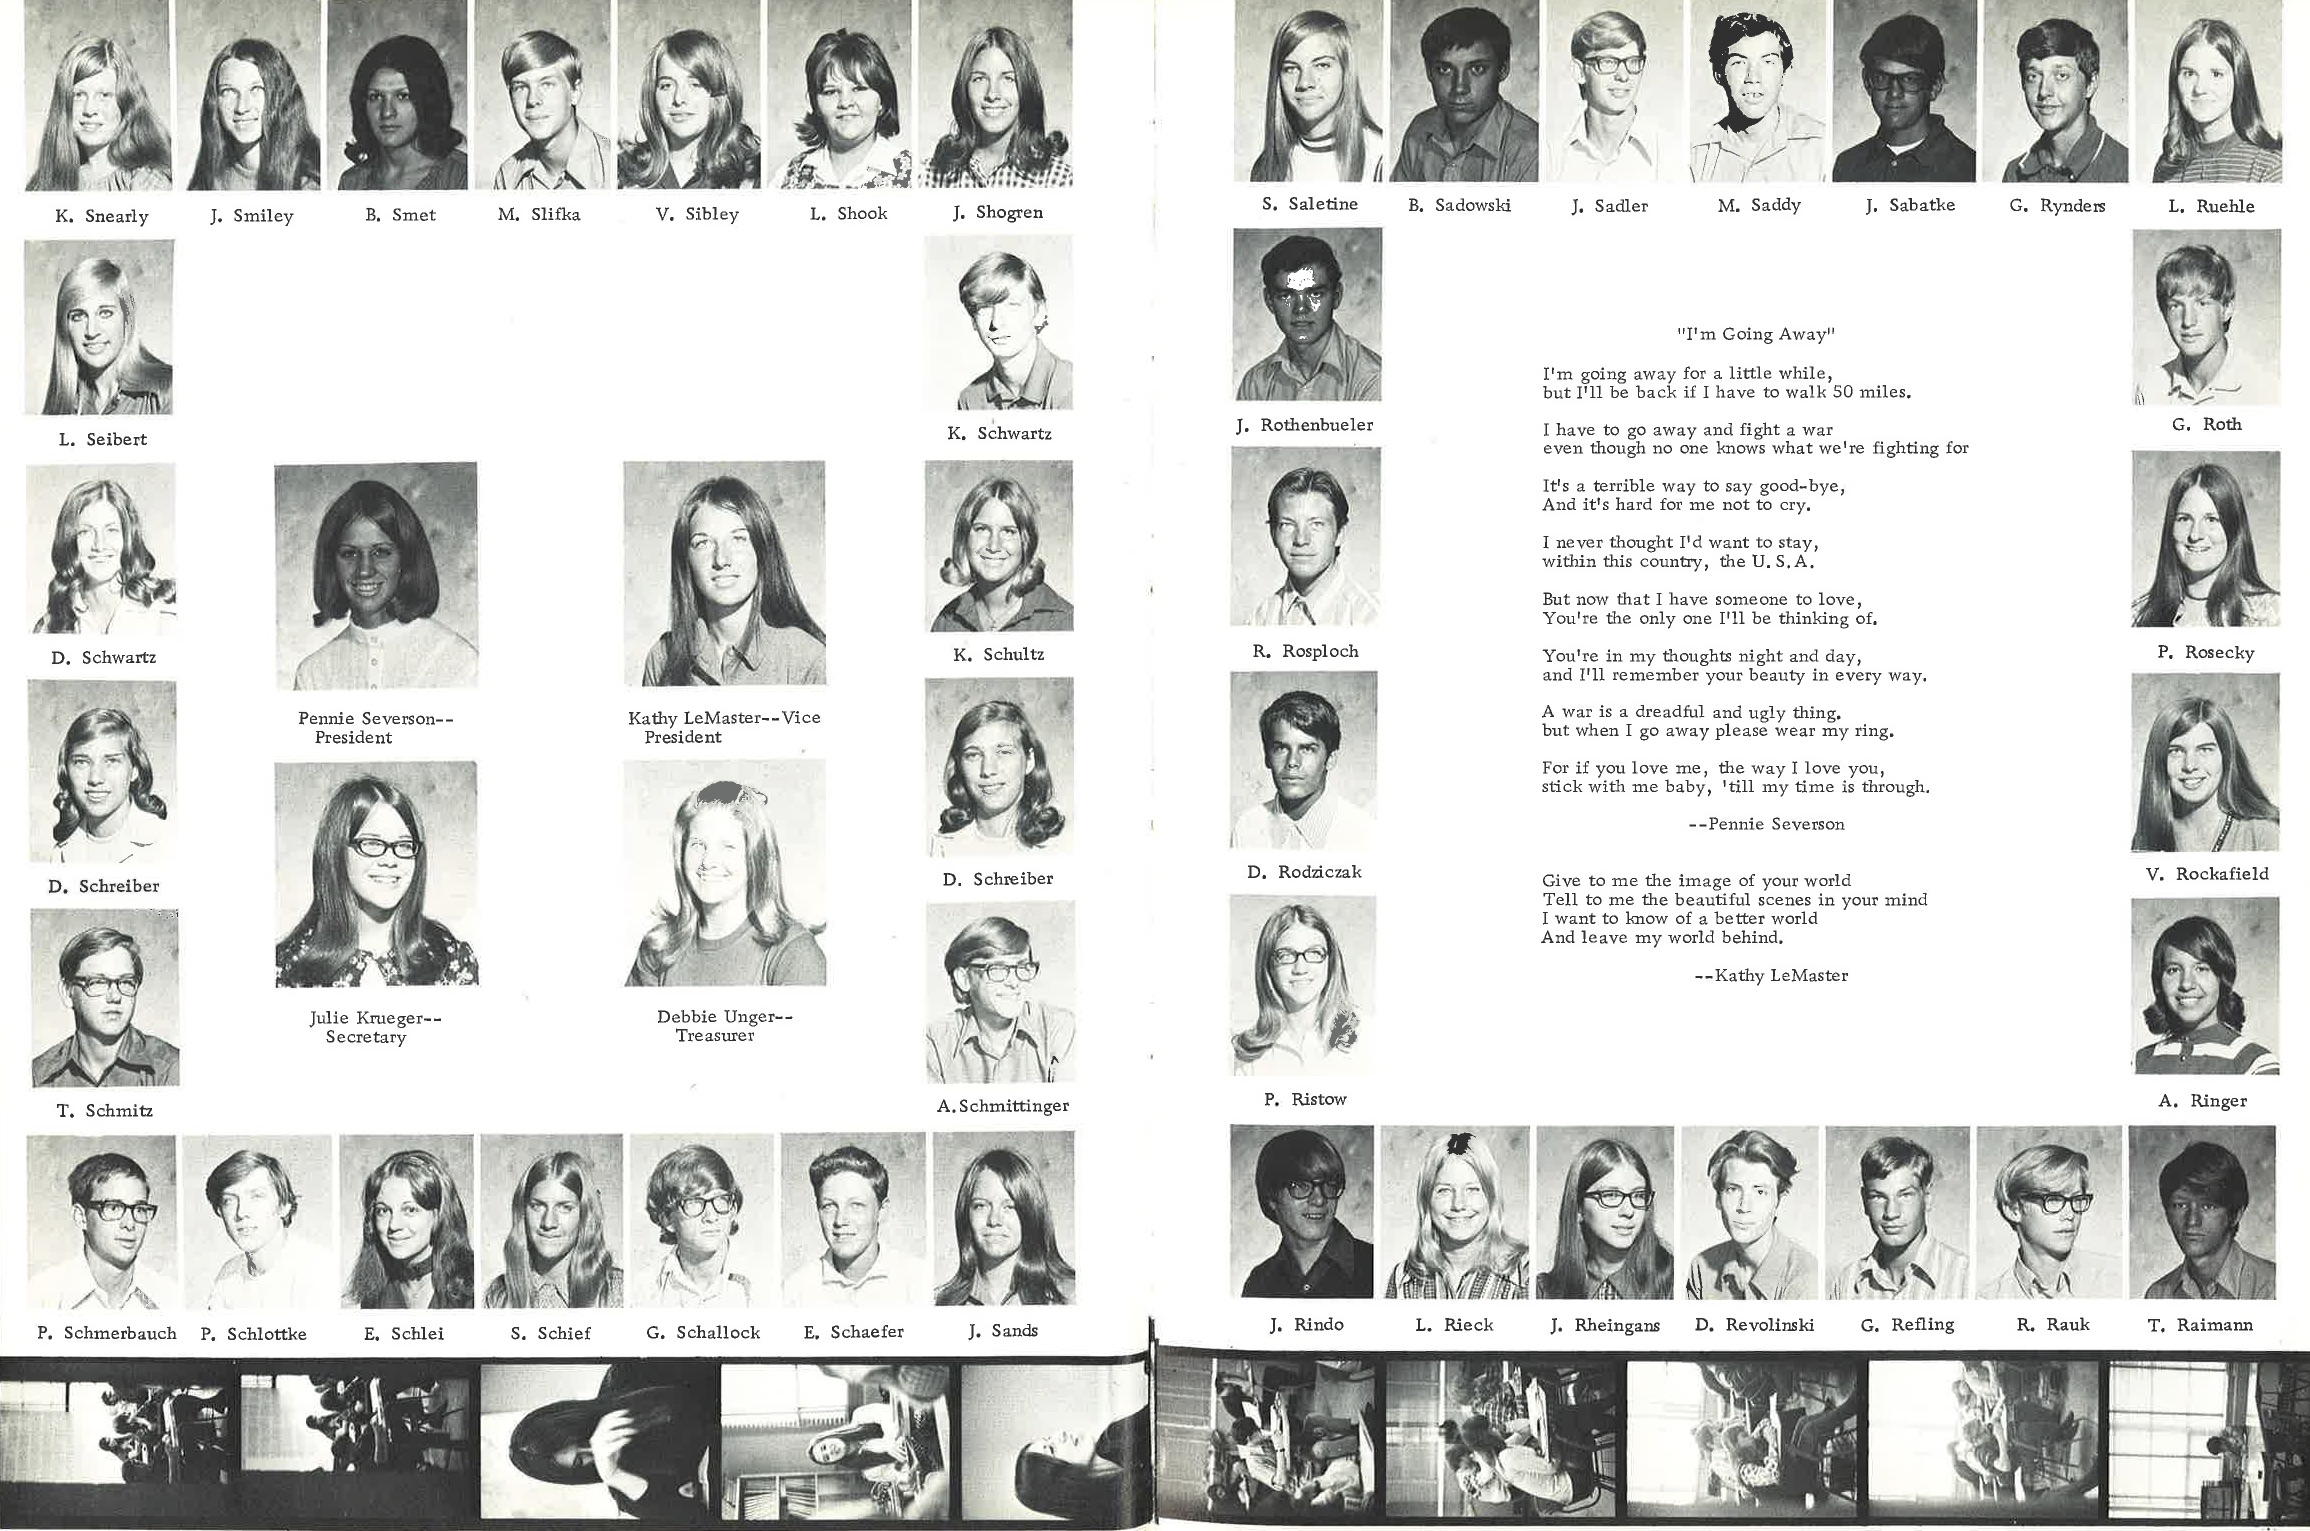 1972_Yearbook_84-85.jpg